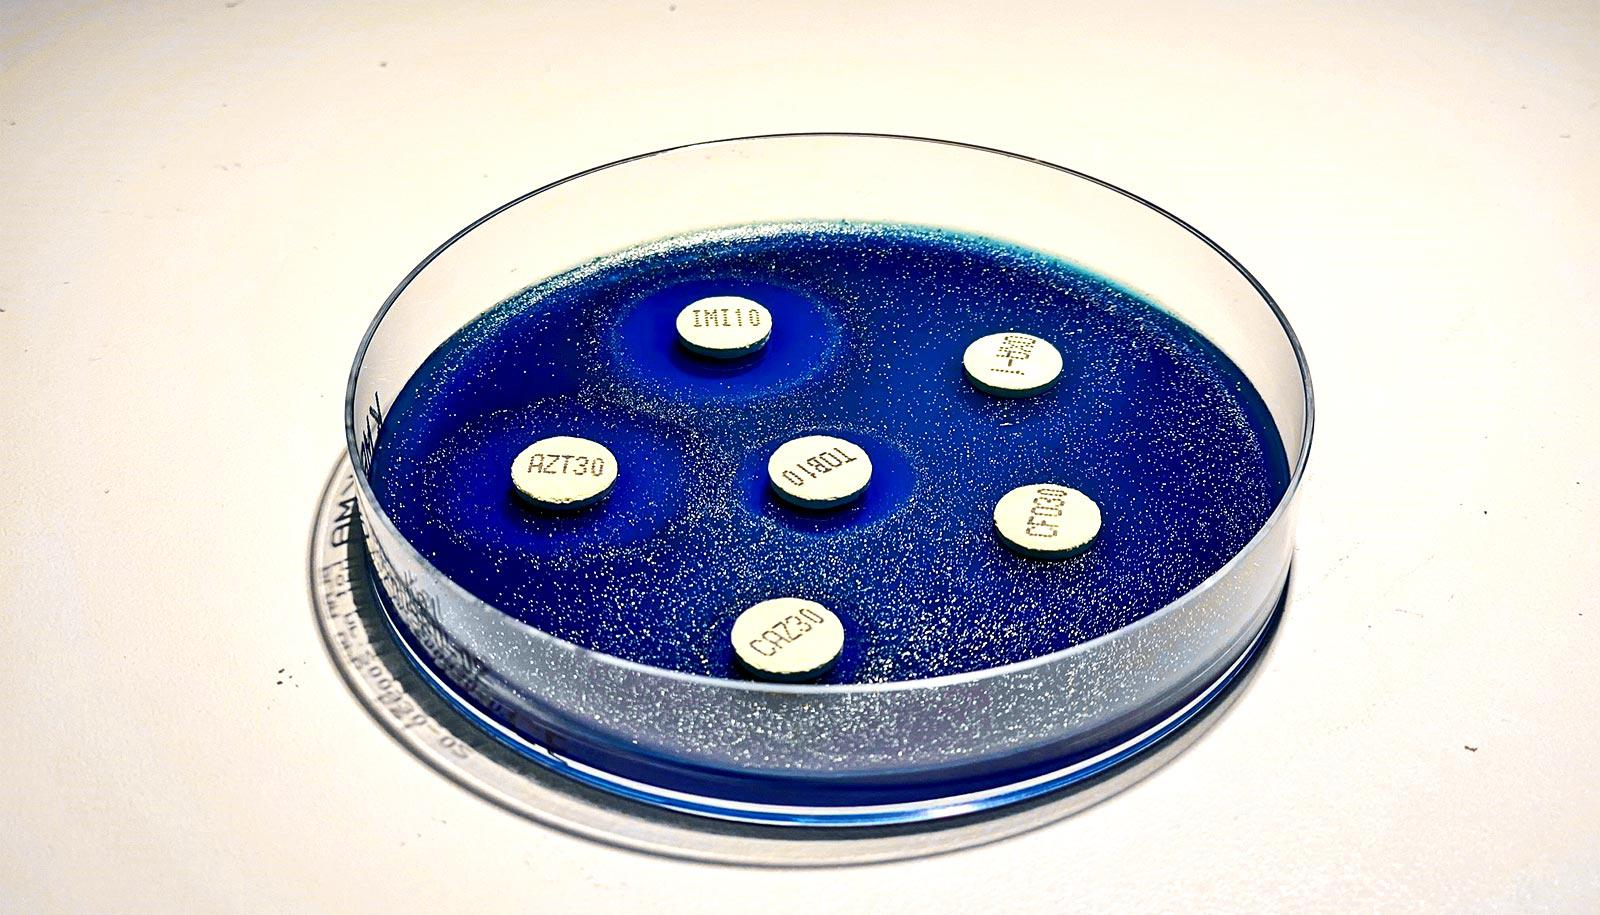 A petri dish has what look like small circles in a blue gel